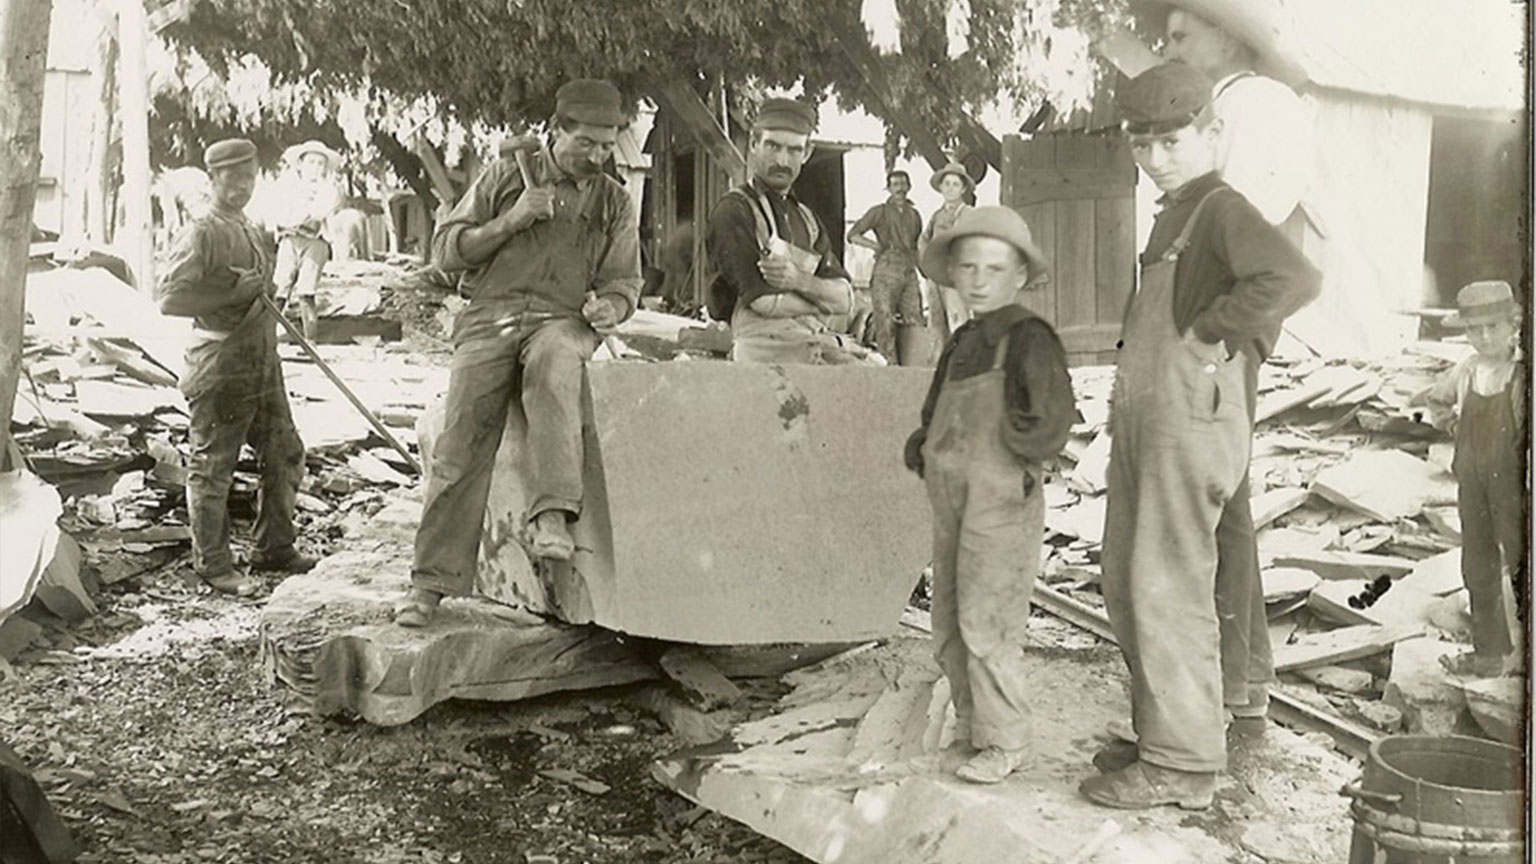 Notice both men and boys were slate cutters.  Slate was another resource that was transported in canal boats along the Lehigh River.